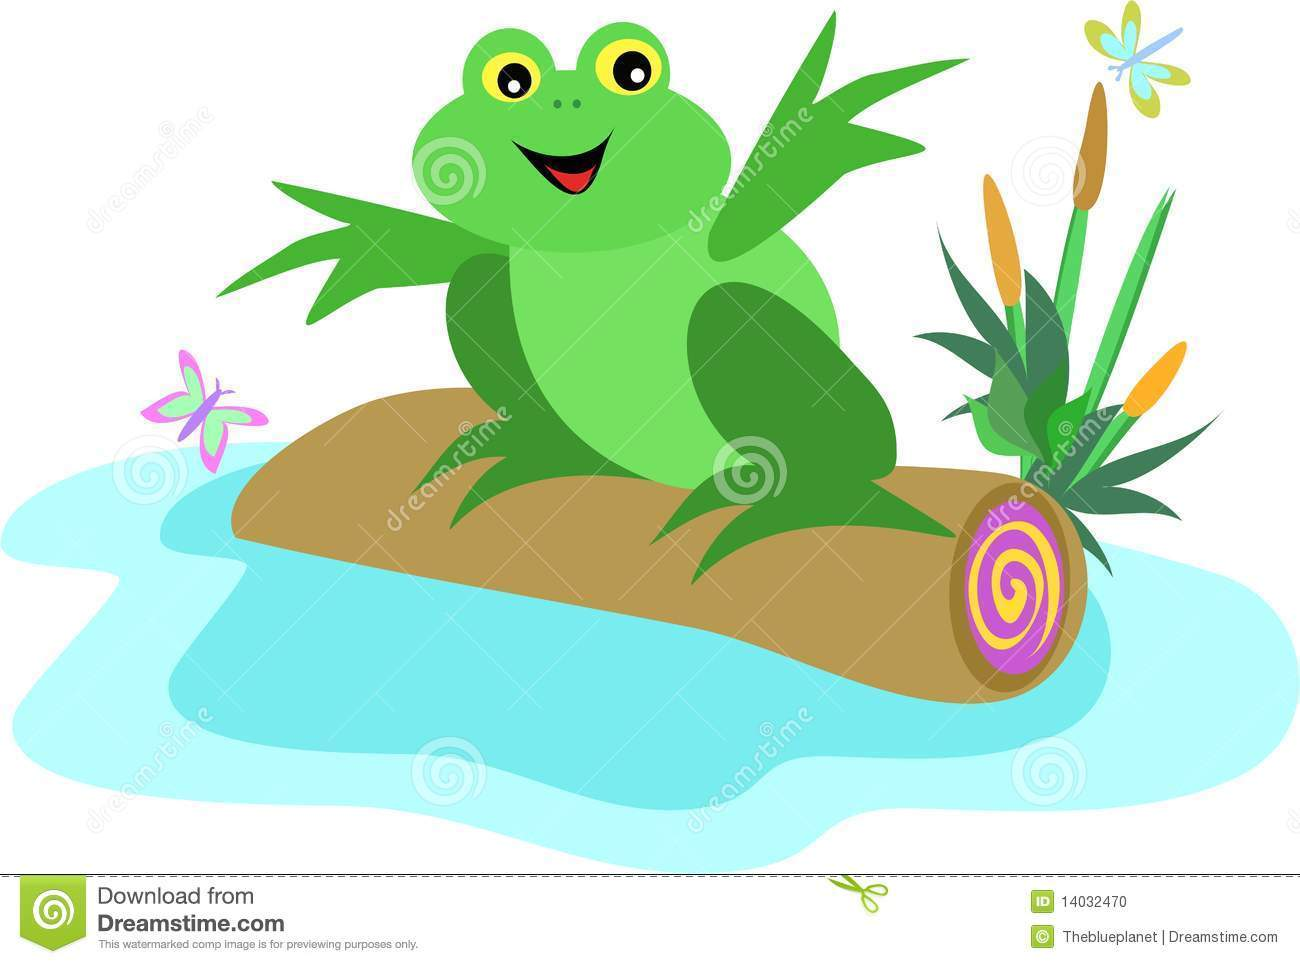 Frog on a log clipart clip freeuse Frog on a log clipart 6 » Clipart Portal clip freeuse